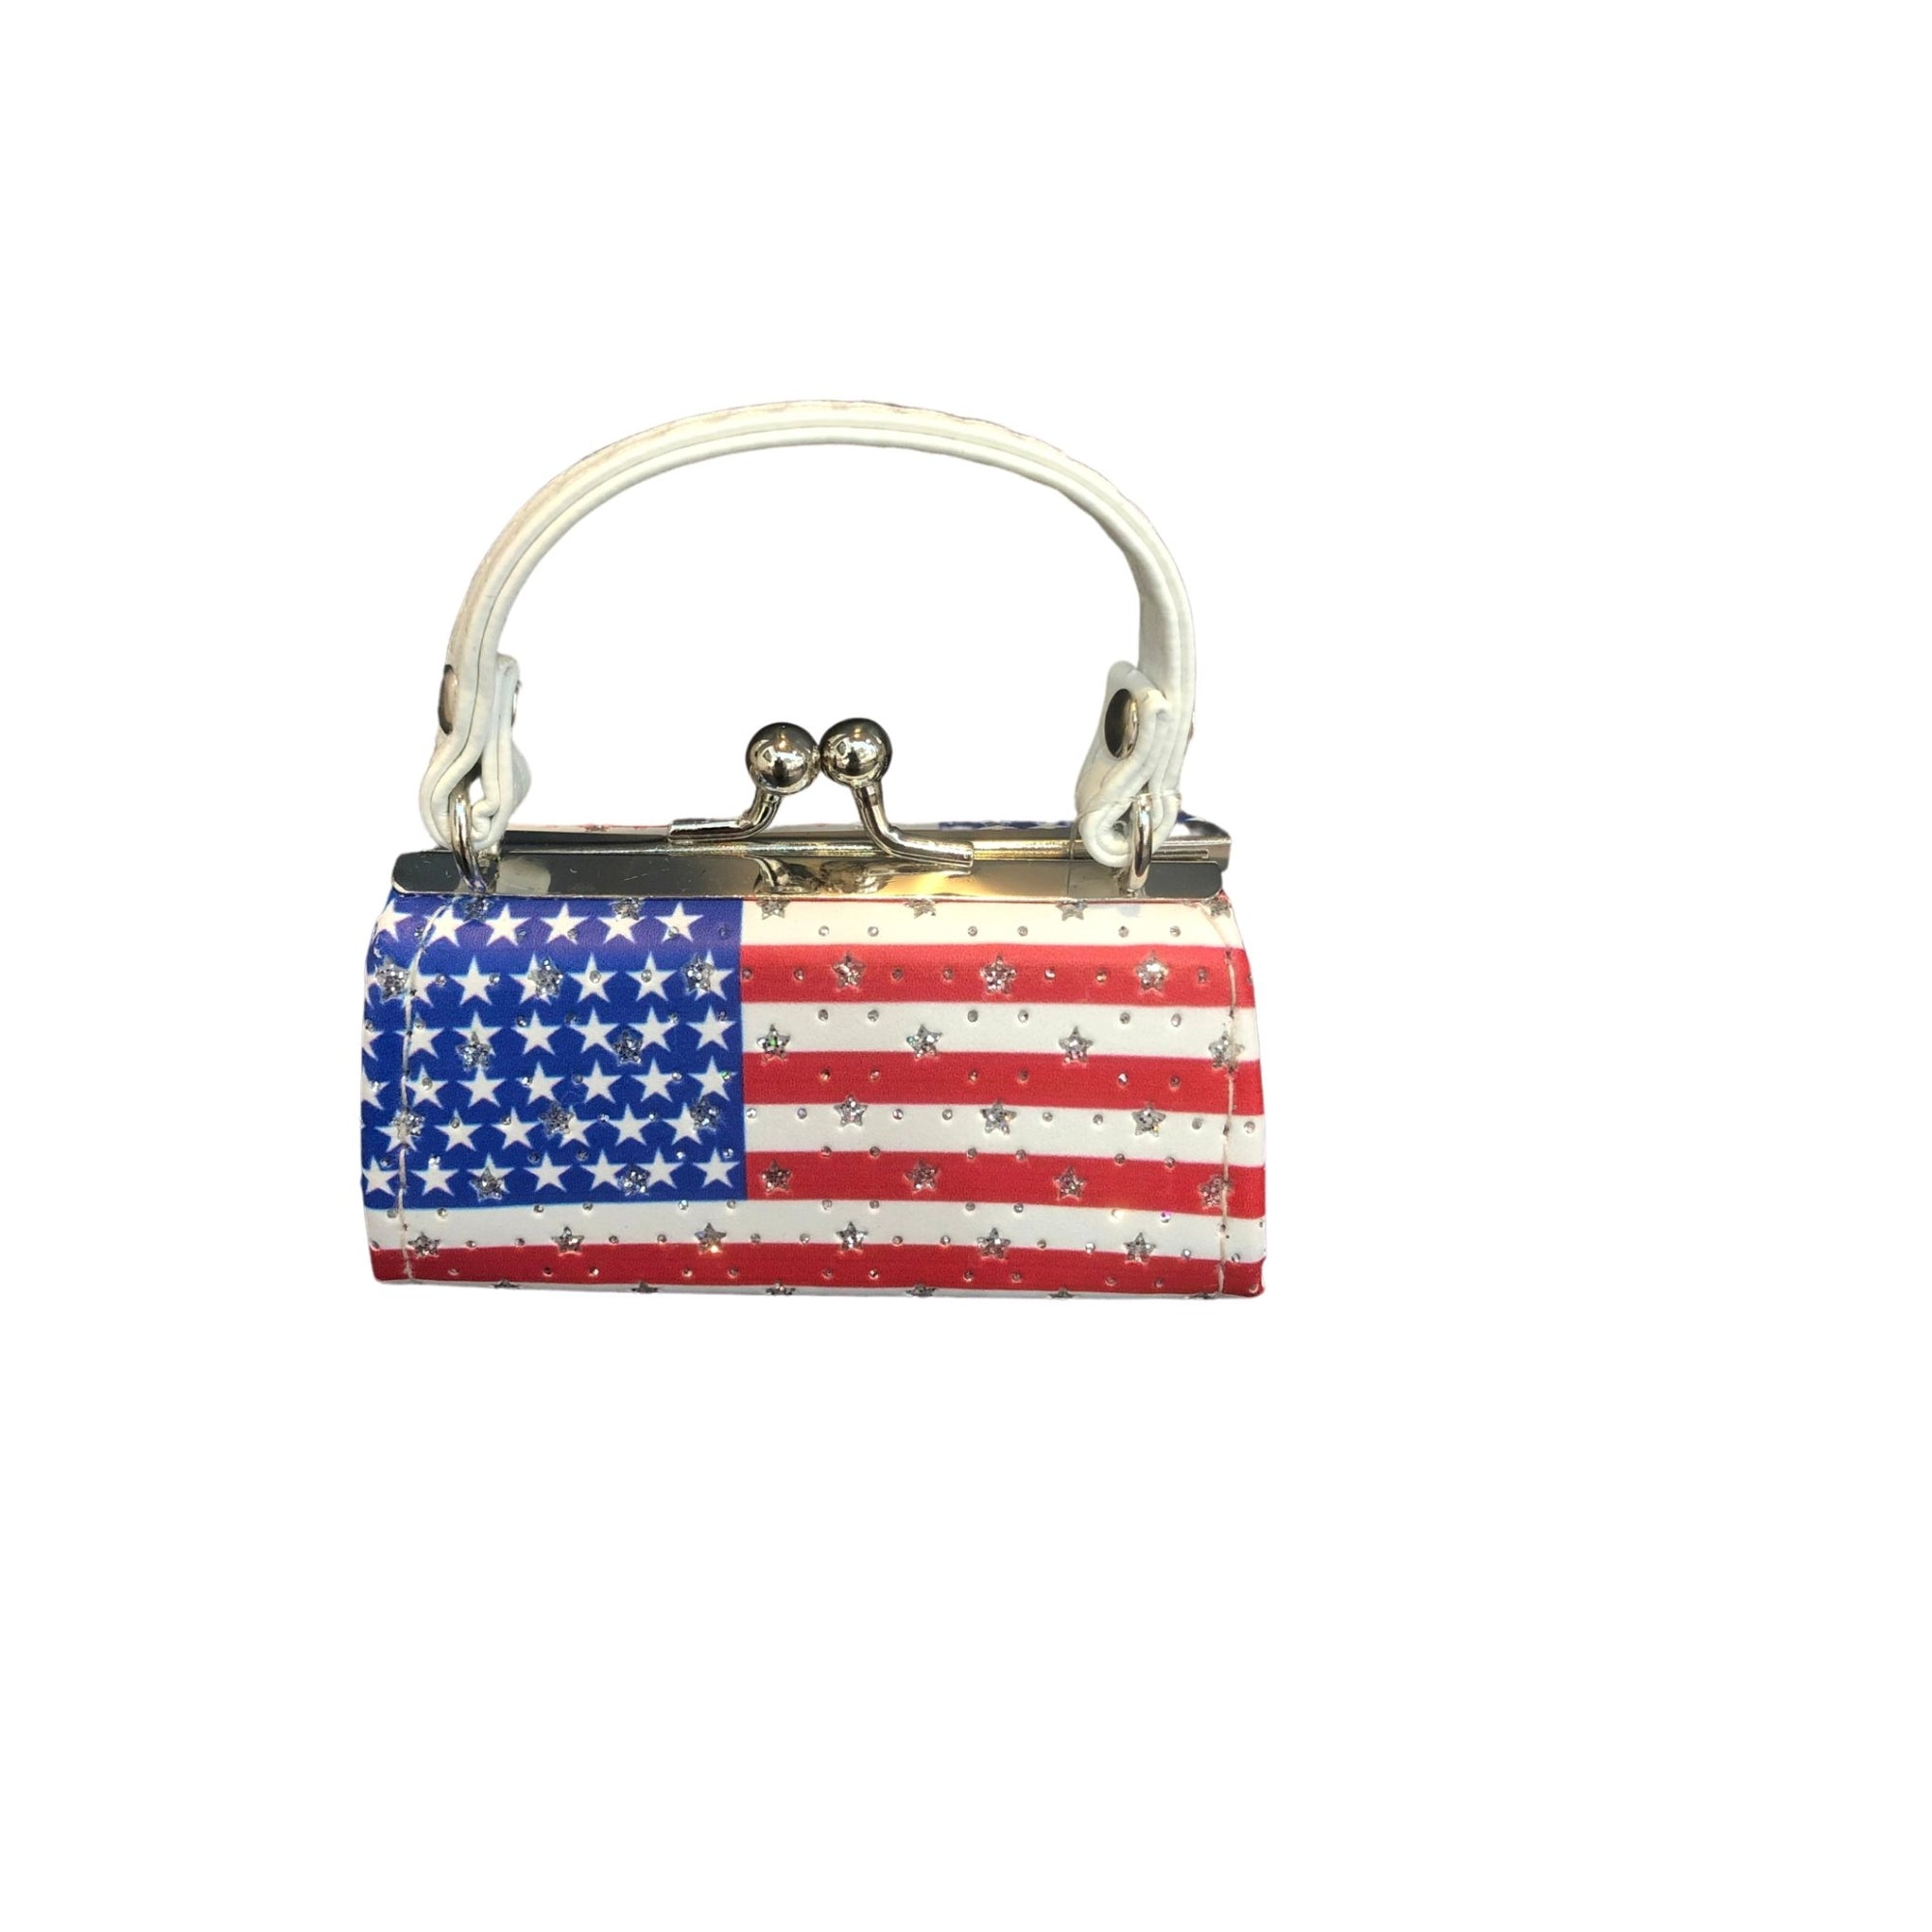 FLAG COIN/LIPSTICK MINI PURSE - Molly's! A Chic and Unique Boutique